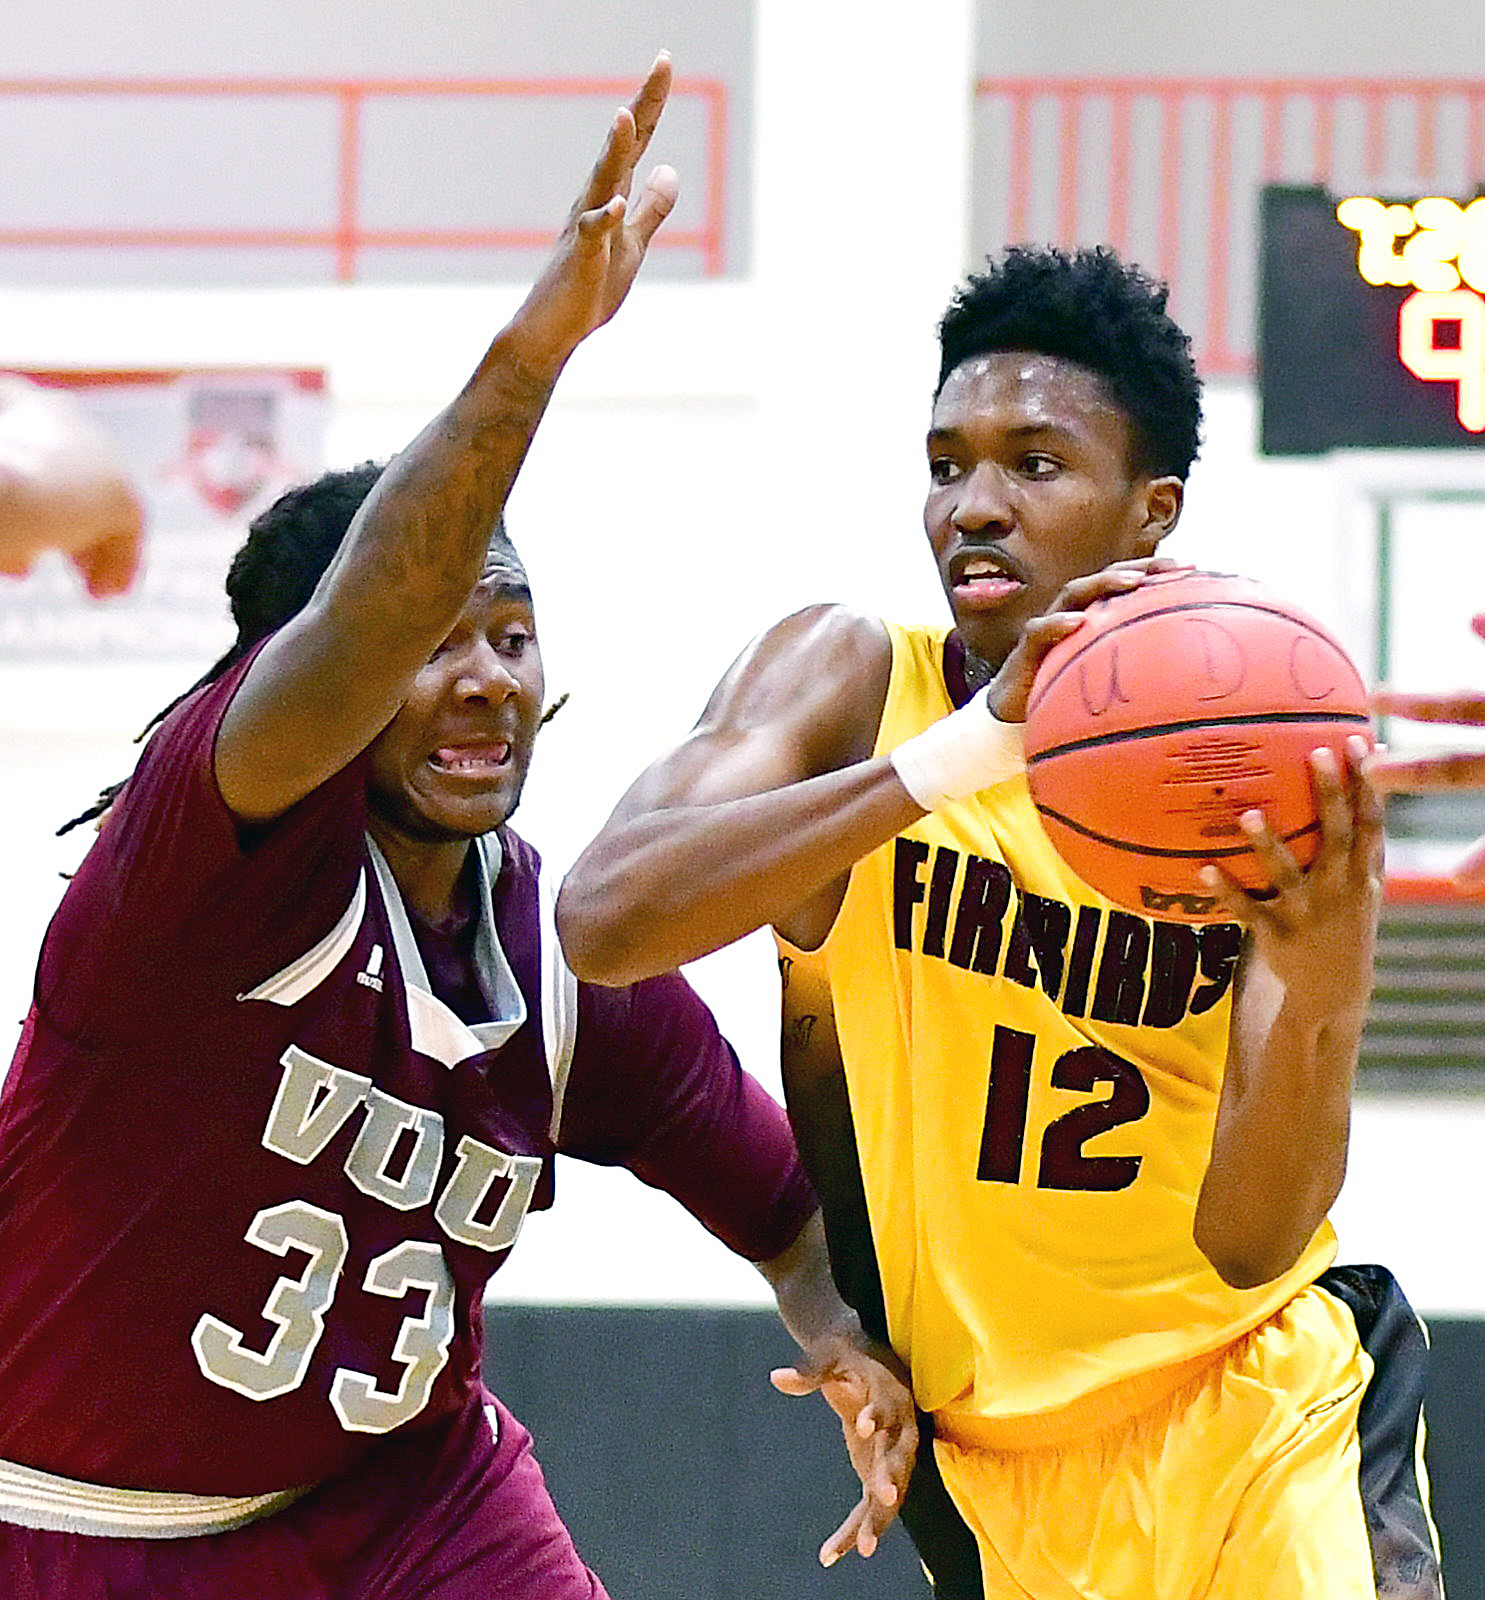 University of the District of Columbia guard Khalil Jackson drives against Virginia Union forward Tavon Mealy in the first half of Virginia Union's 71-69 win at UDC Gymnasium in Northwest on Wednesday, Nov. 30. /Photo by John E. De Freitas